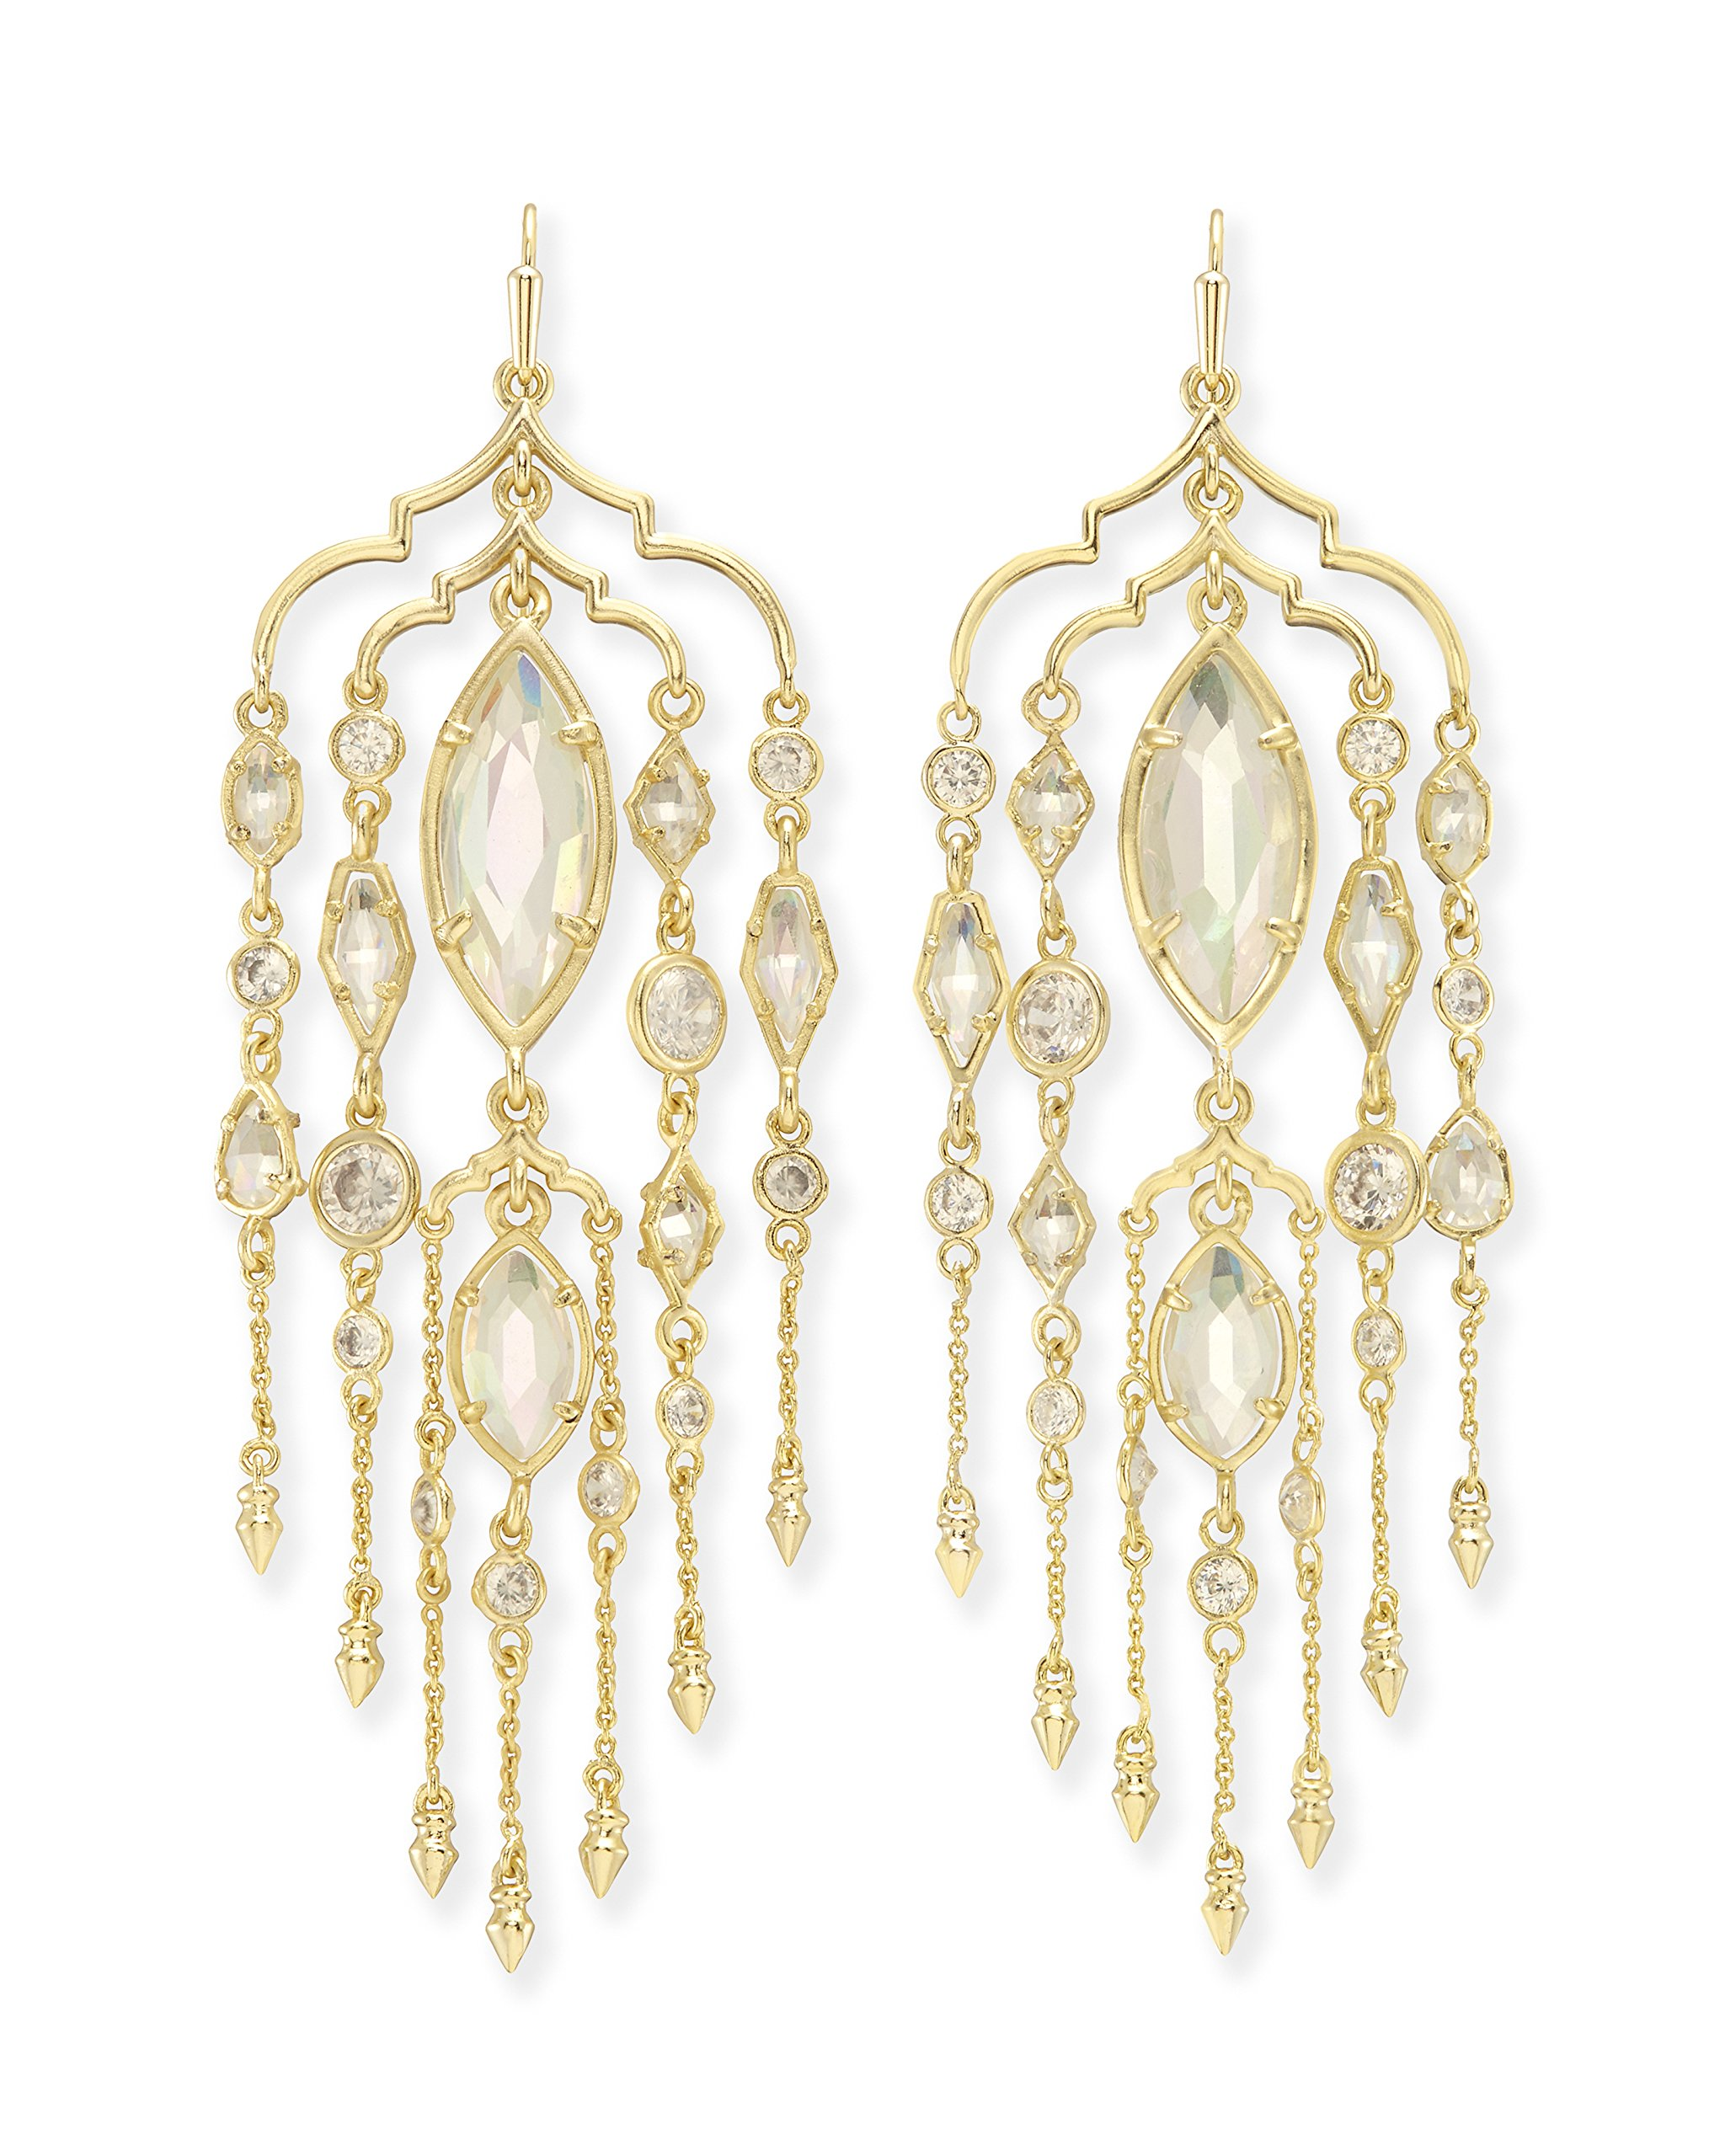 Kendra Scott Emma Shoulder Duster Earrings in Gold Plated, Iridescent Glass and Cubic Zirconia